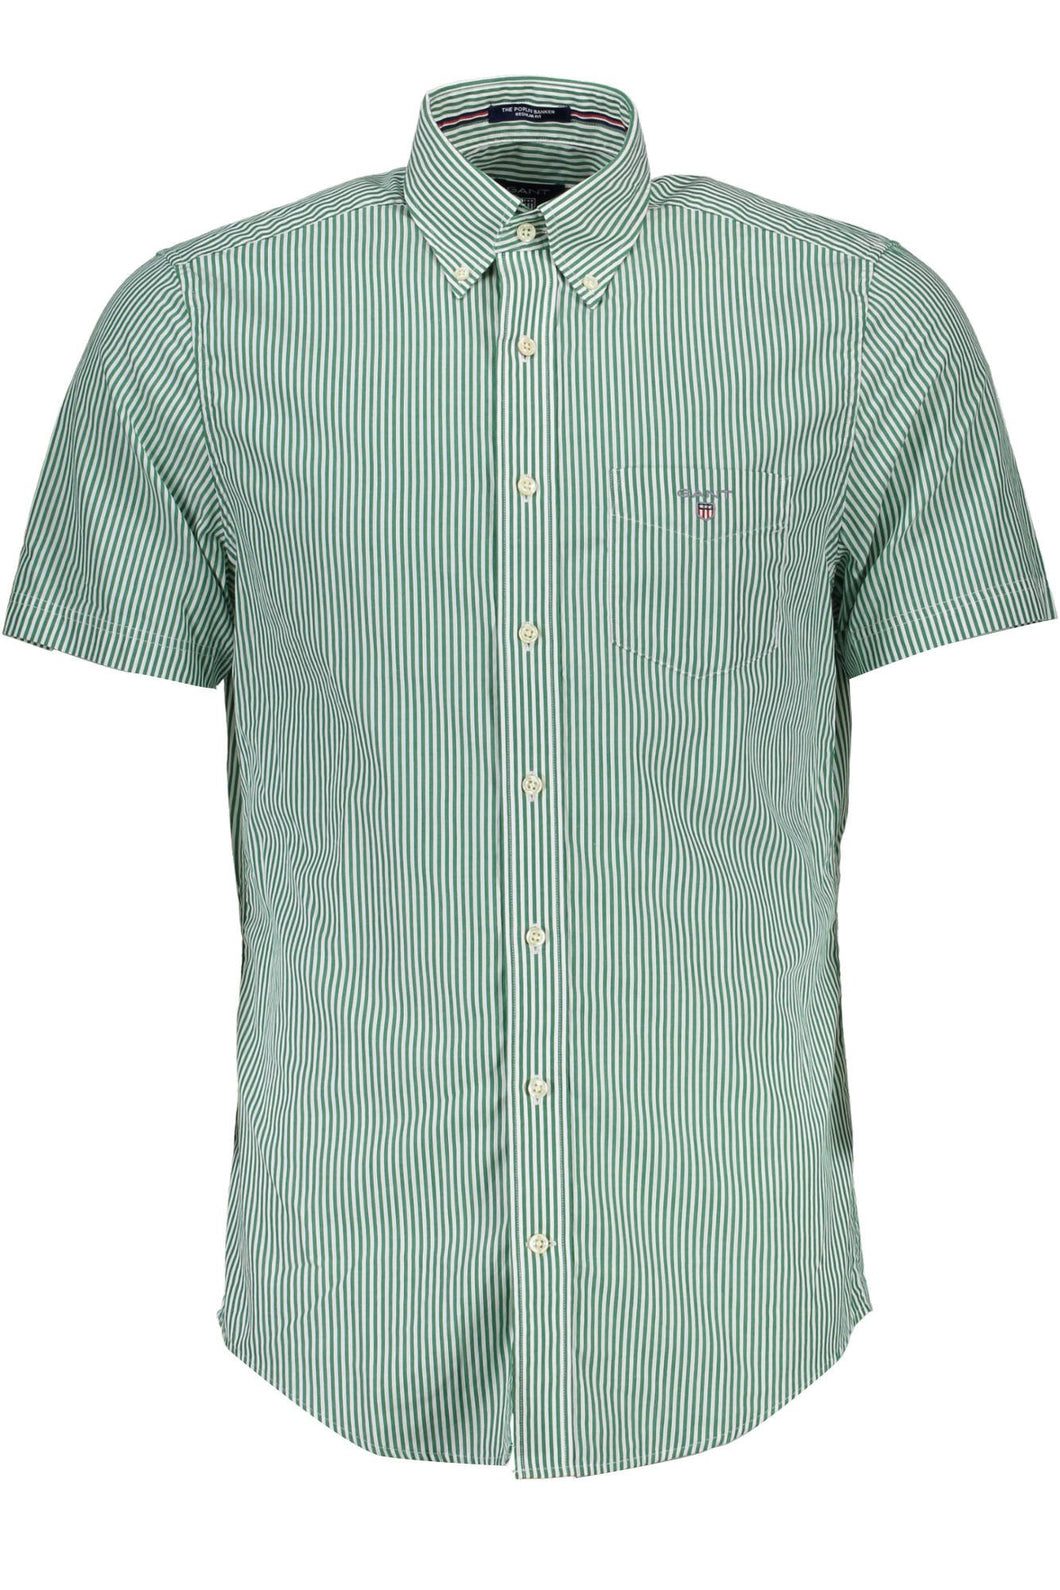 Gant Men Shirt - SisBrothers